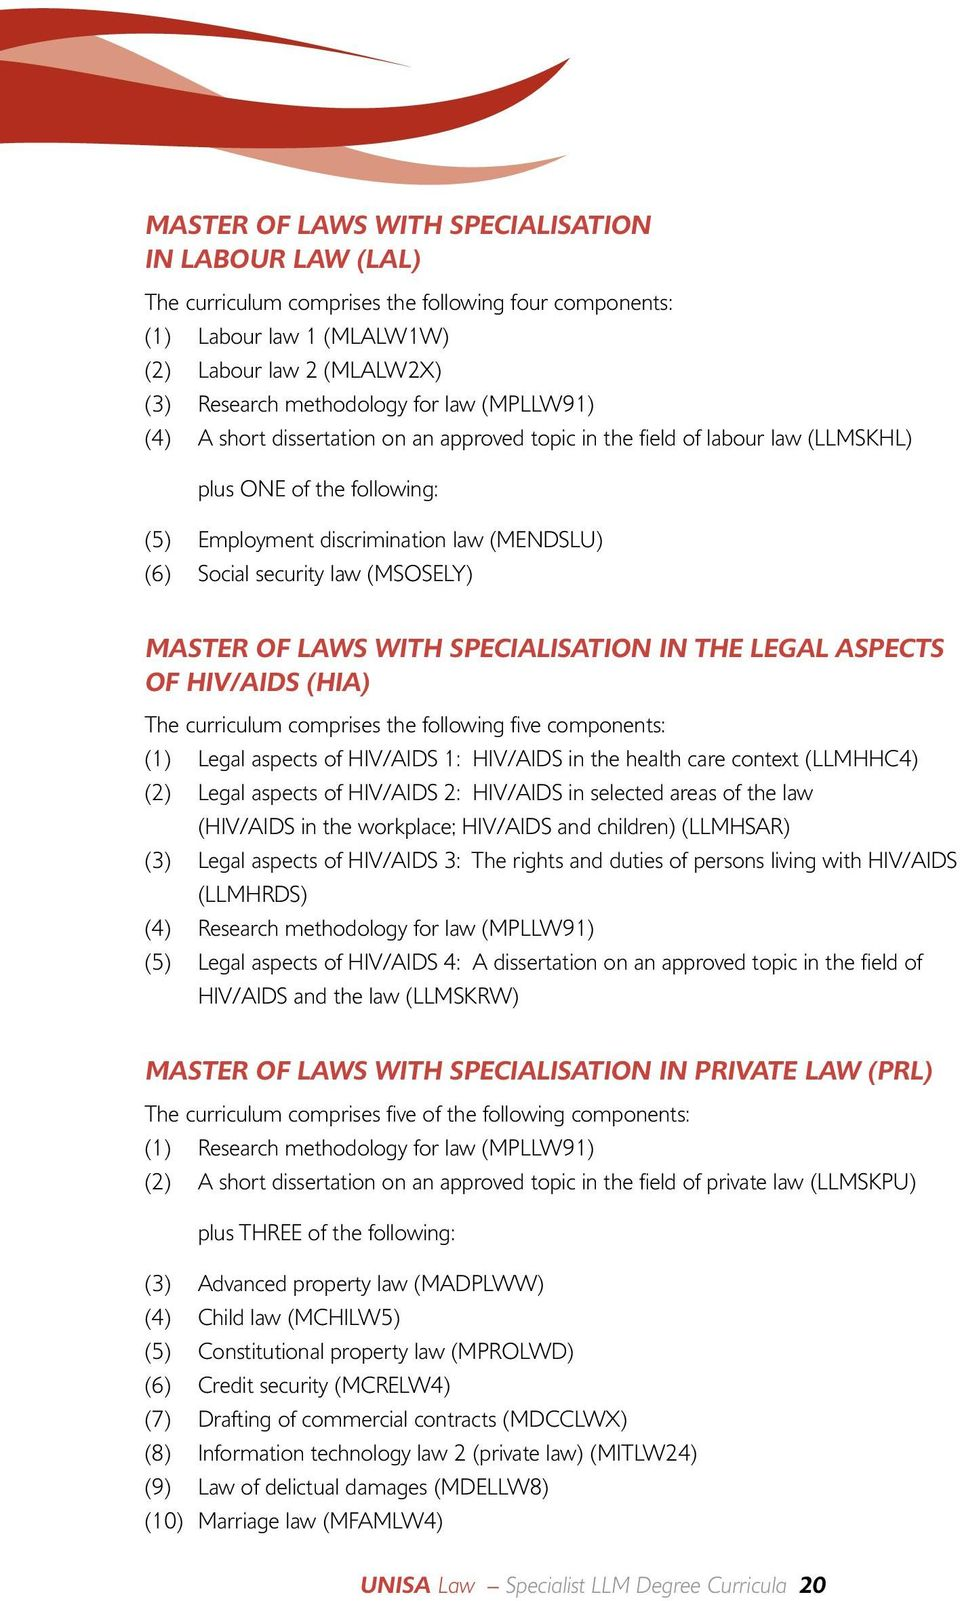 Dissertation proposal construction law